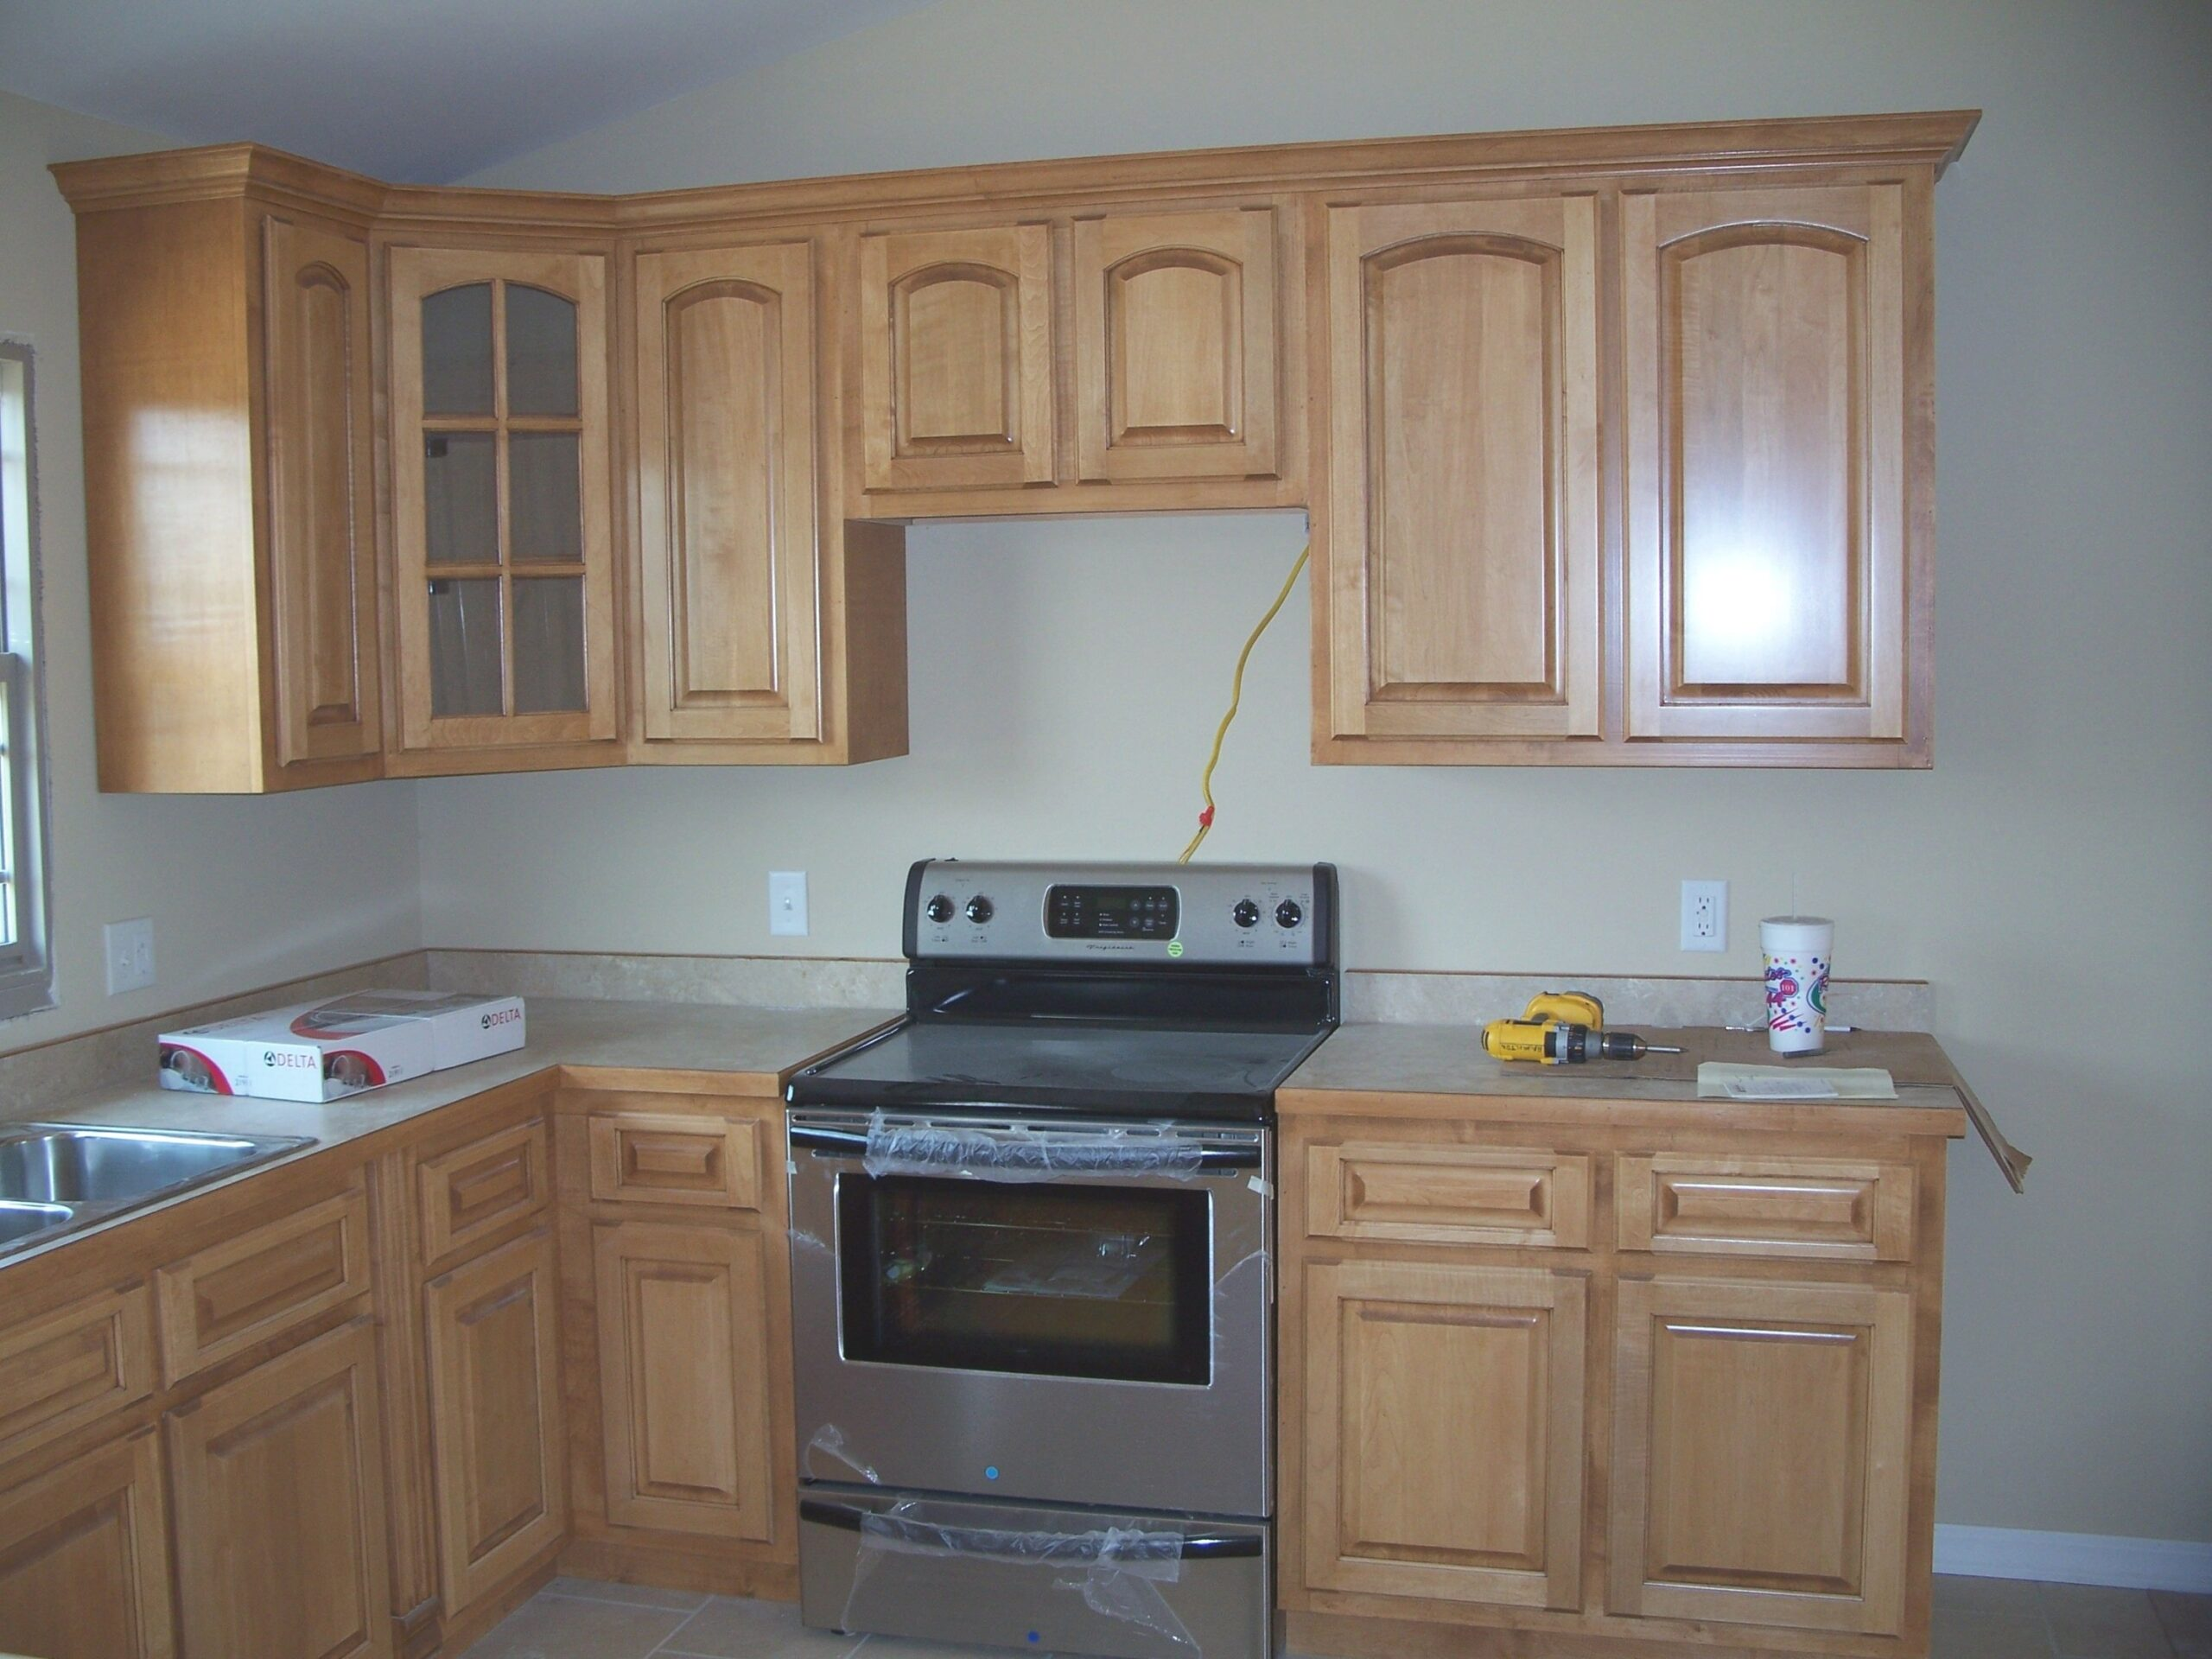 12 Best Ideas Simple Kitchen Design For Very Small House with Image Of Small Kitchen